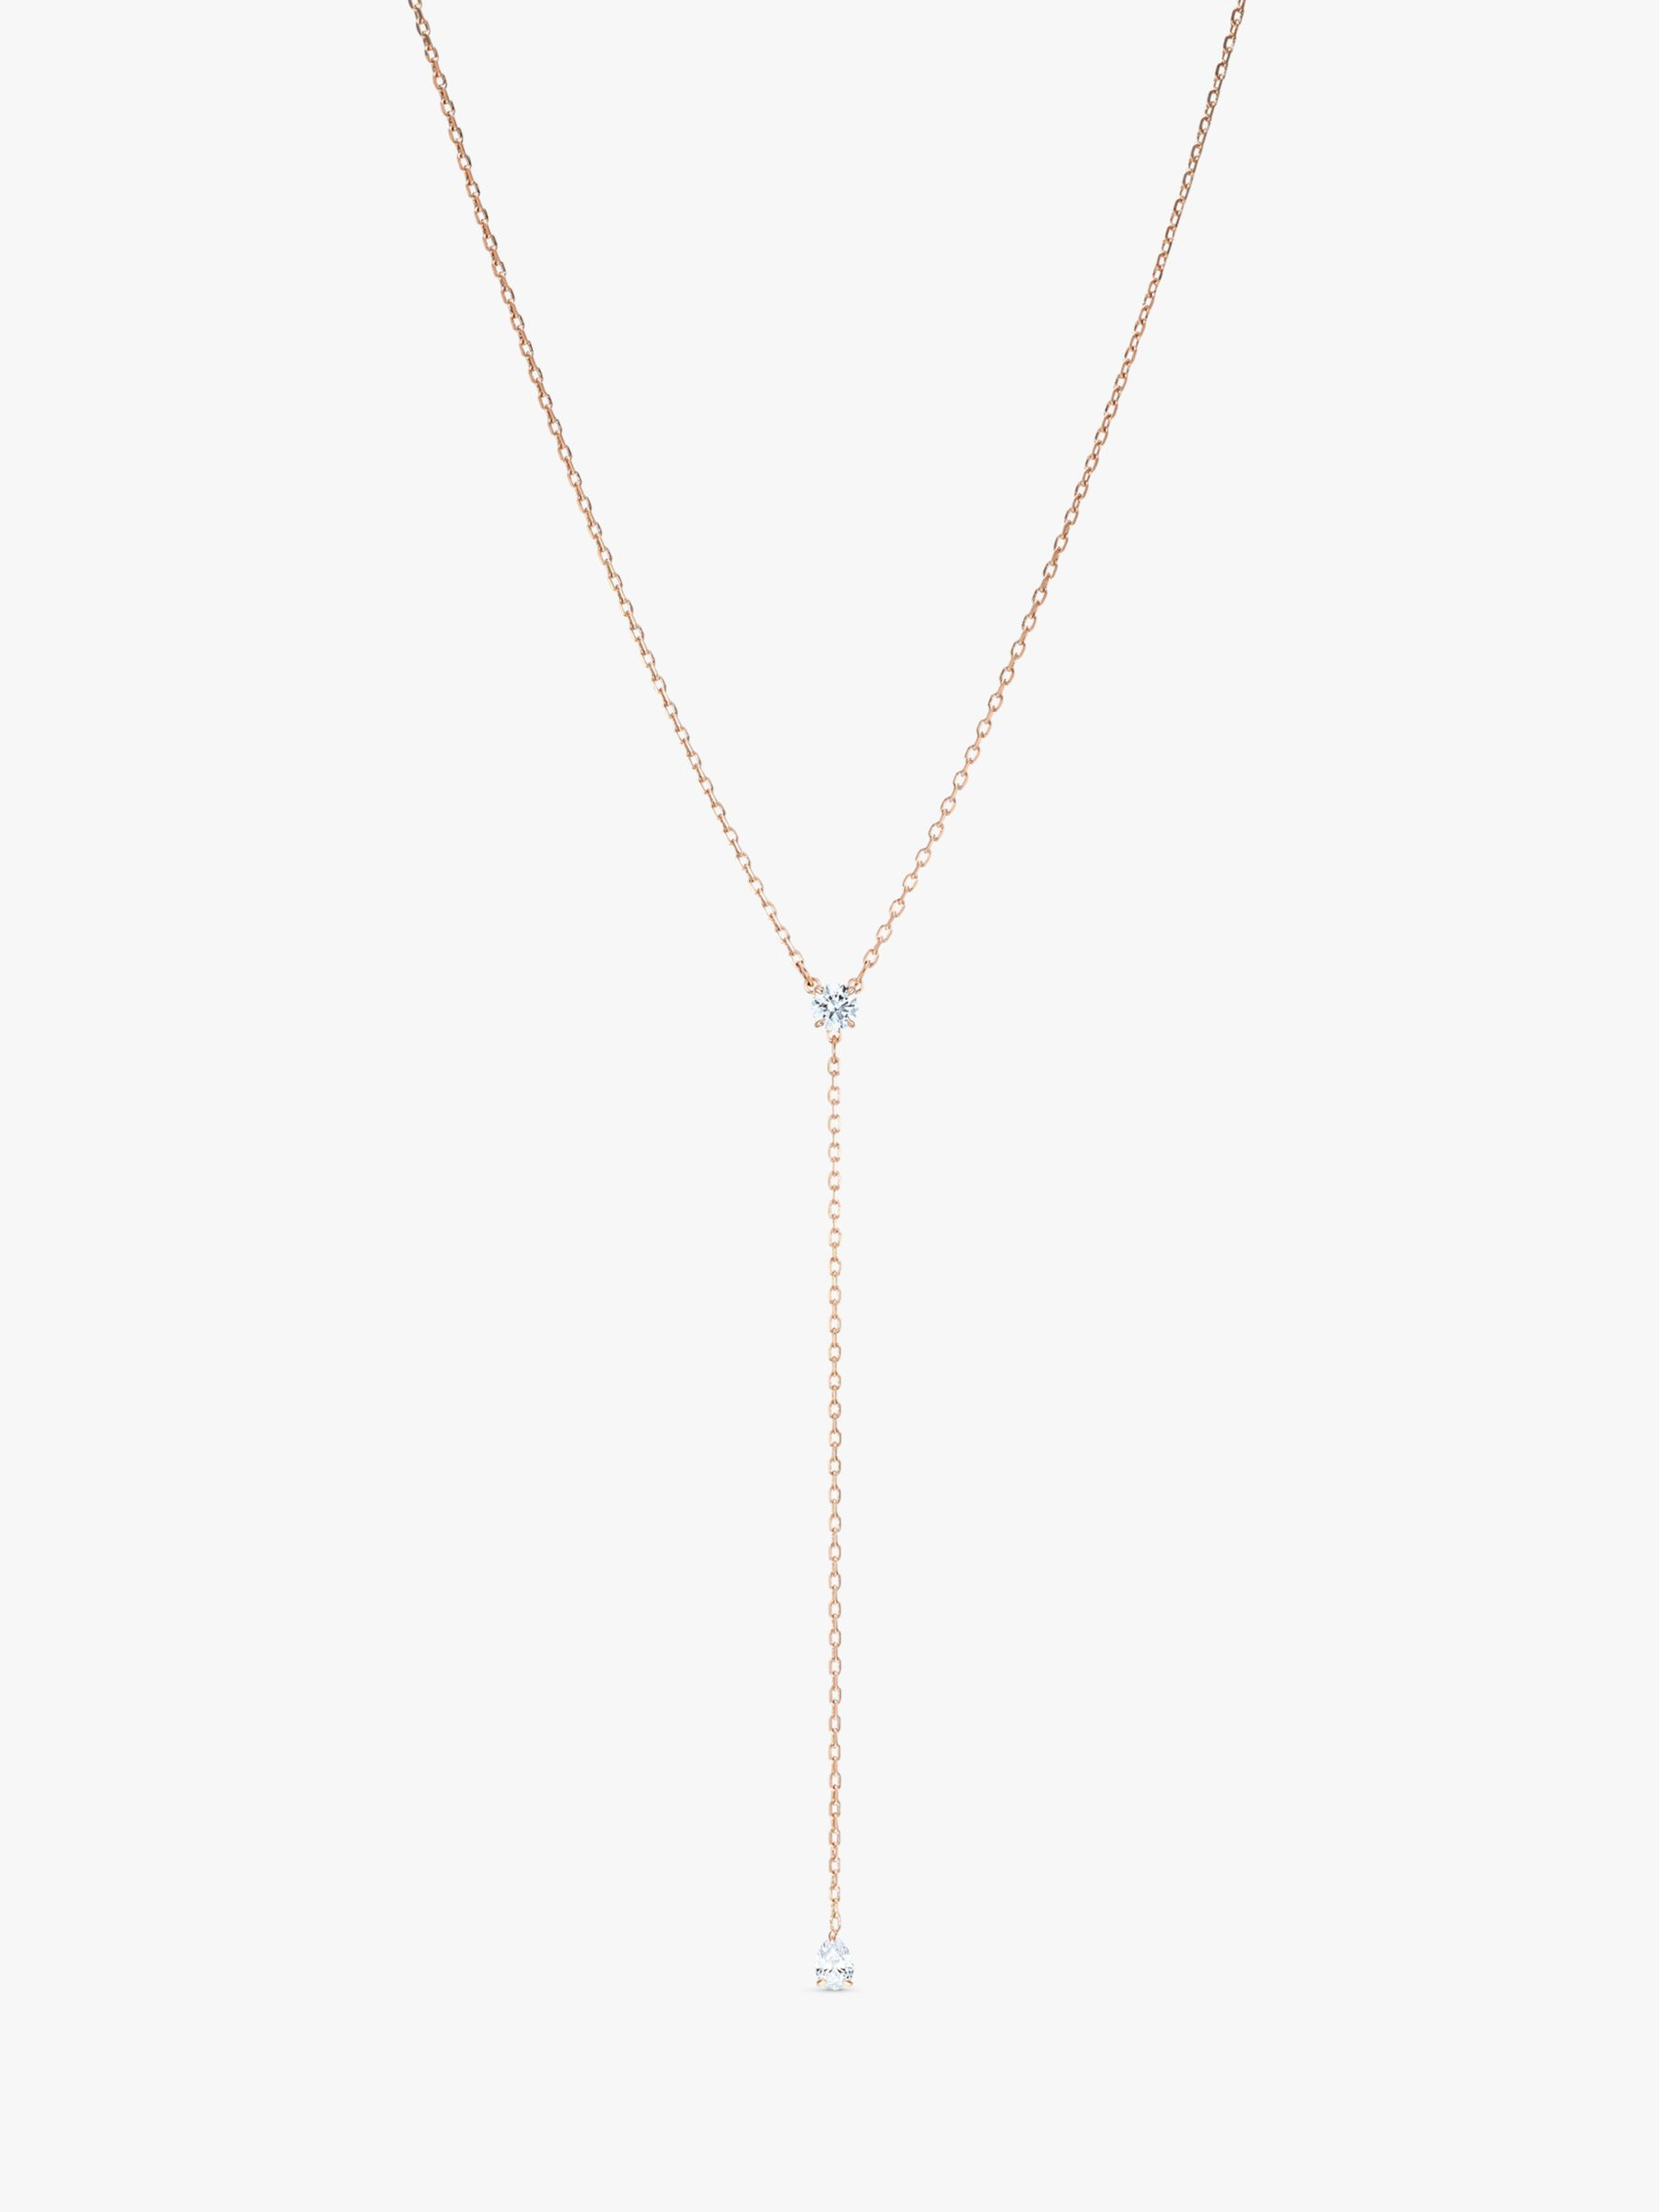 Swarovski Swarovski Attract Soul Y Pendant Necklace, Rose Gold